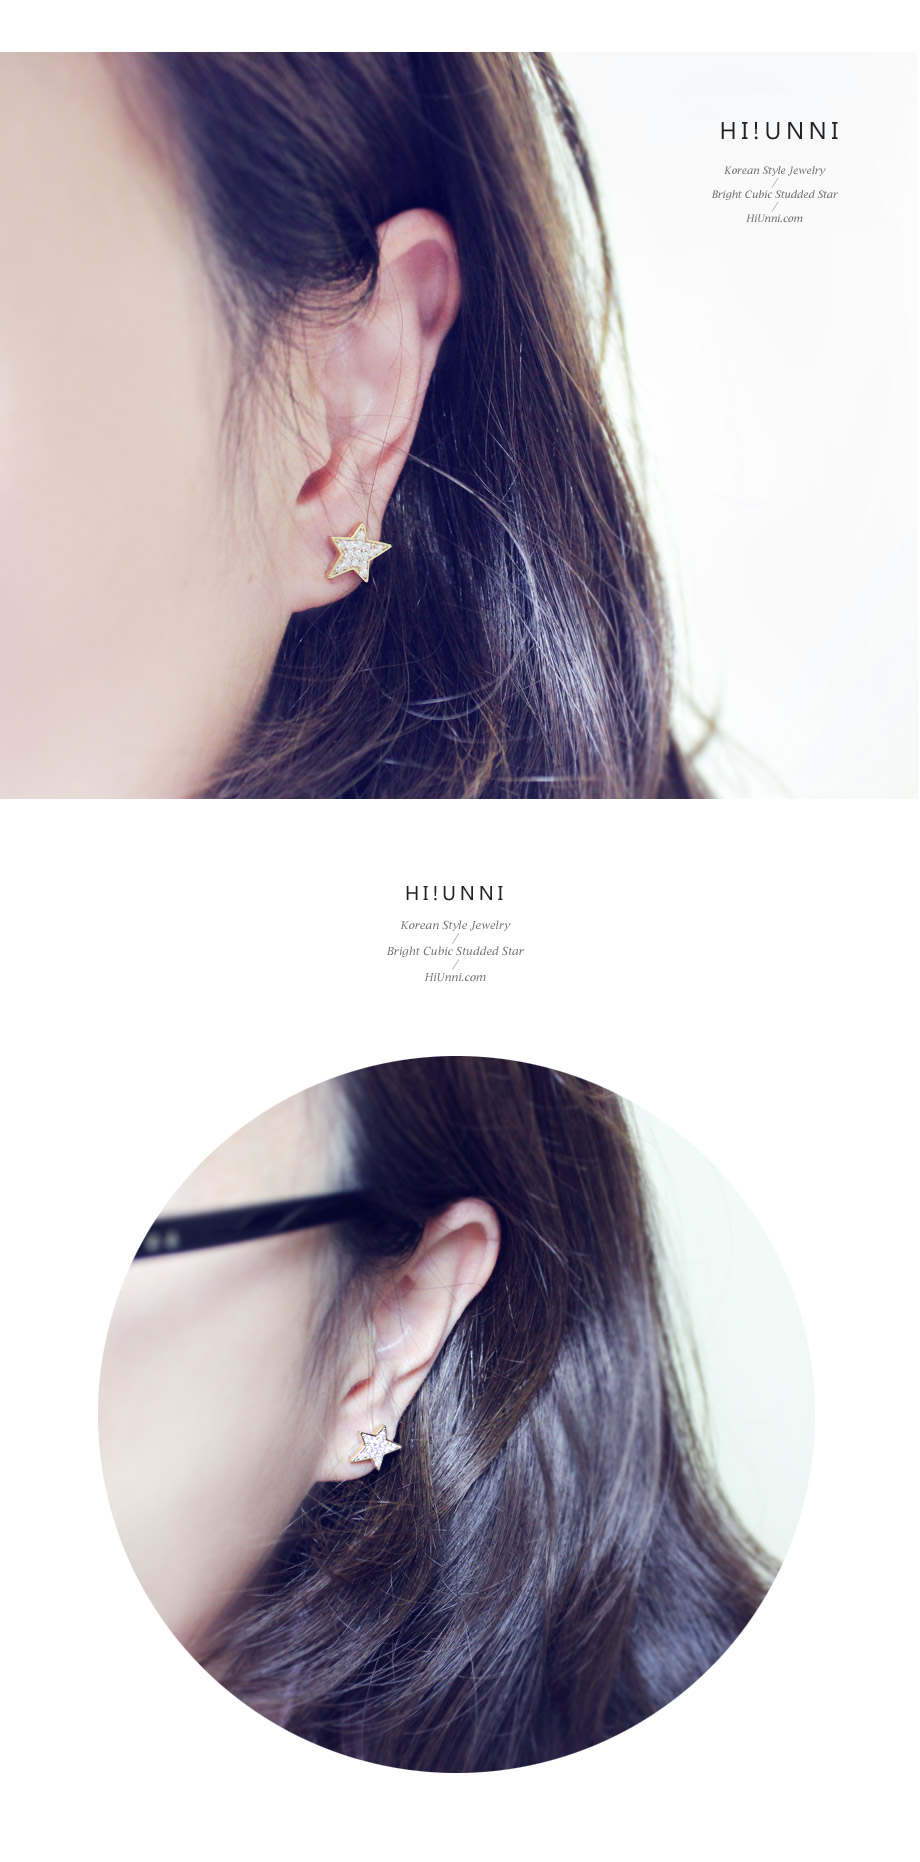 ear_studs_piercing_Cartilage_earrings_16g_316l_Surgical_Stainless_Steel_korean_asian_style_jewelry_barbell_crystal_star_6